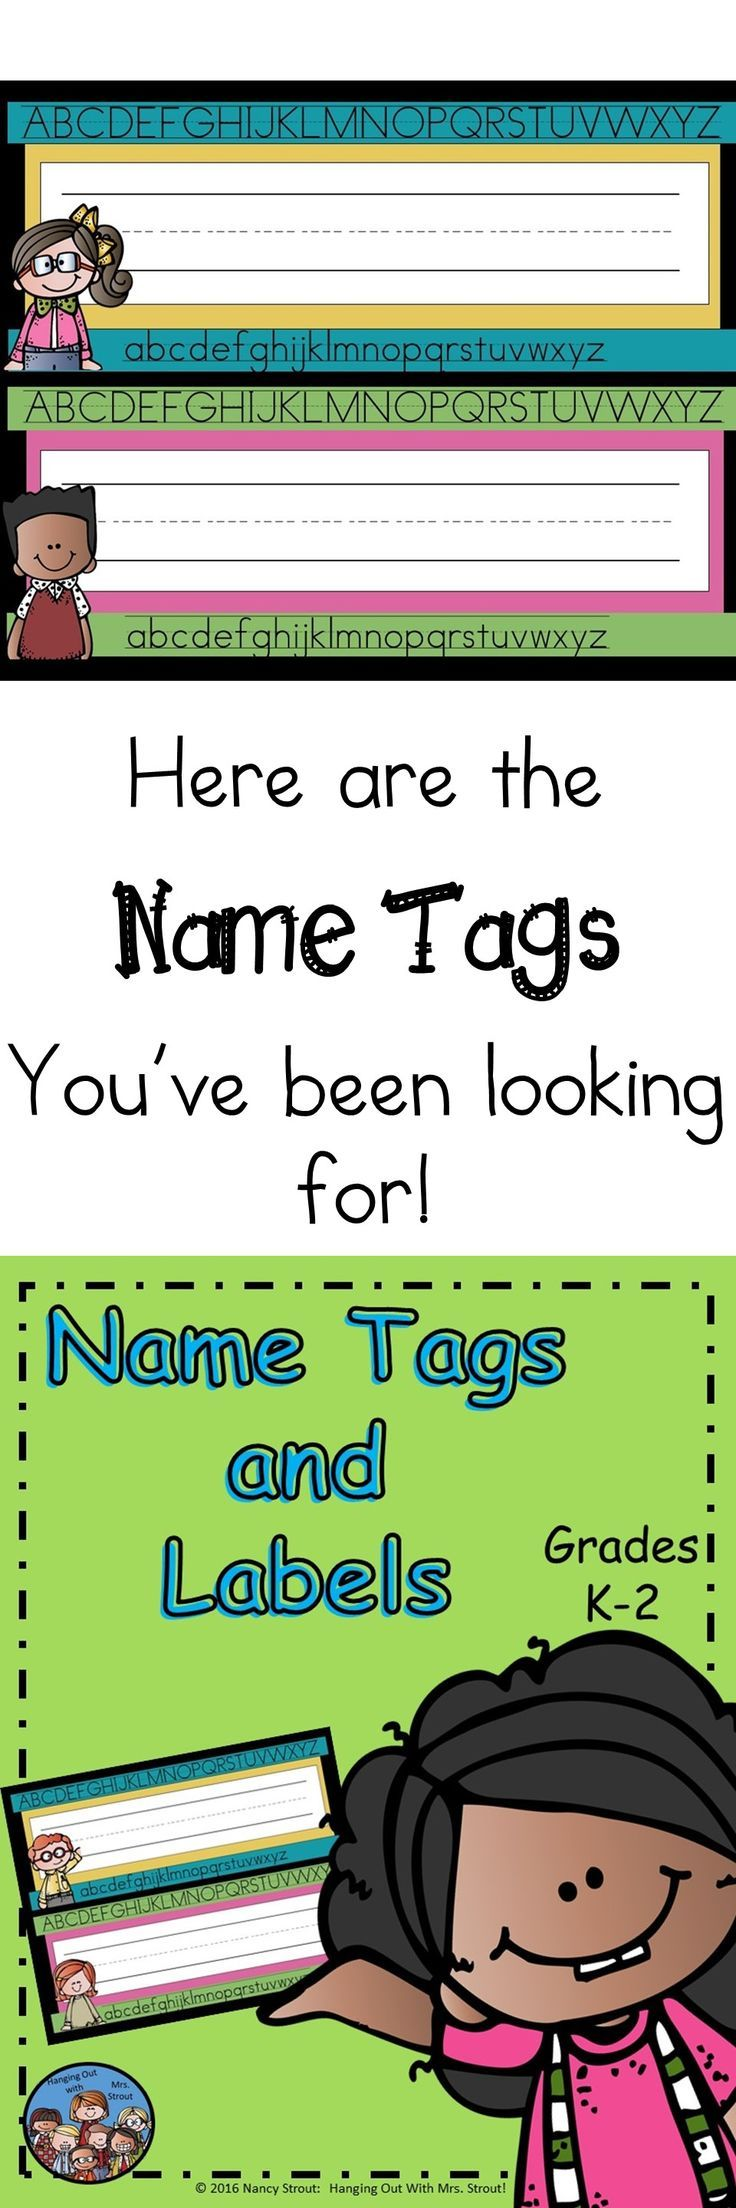 Here are some name tags for your classroom. Just copy onto tagboard and write your students names on them. Laminate and they are ready to use. You can use them on desktops, in the hallway on top of their hooks, and in their cubbies. Just print as many as you need for the students you have. Also included are stars to decorate a bulletin board or your door and welcome bookmarks. Each set is done for 3 grade levels: Kinder Kids, First Grade Friends, Second Grade Stars